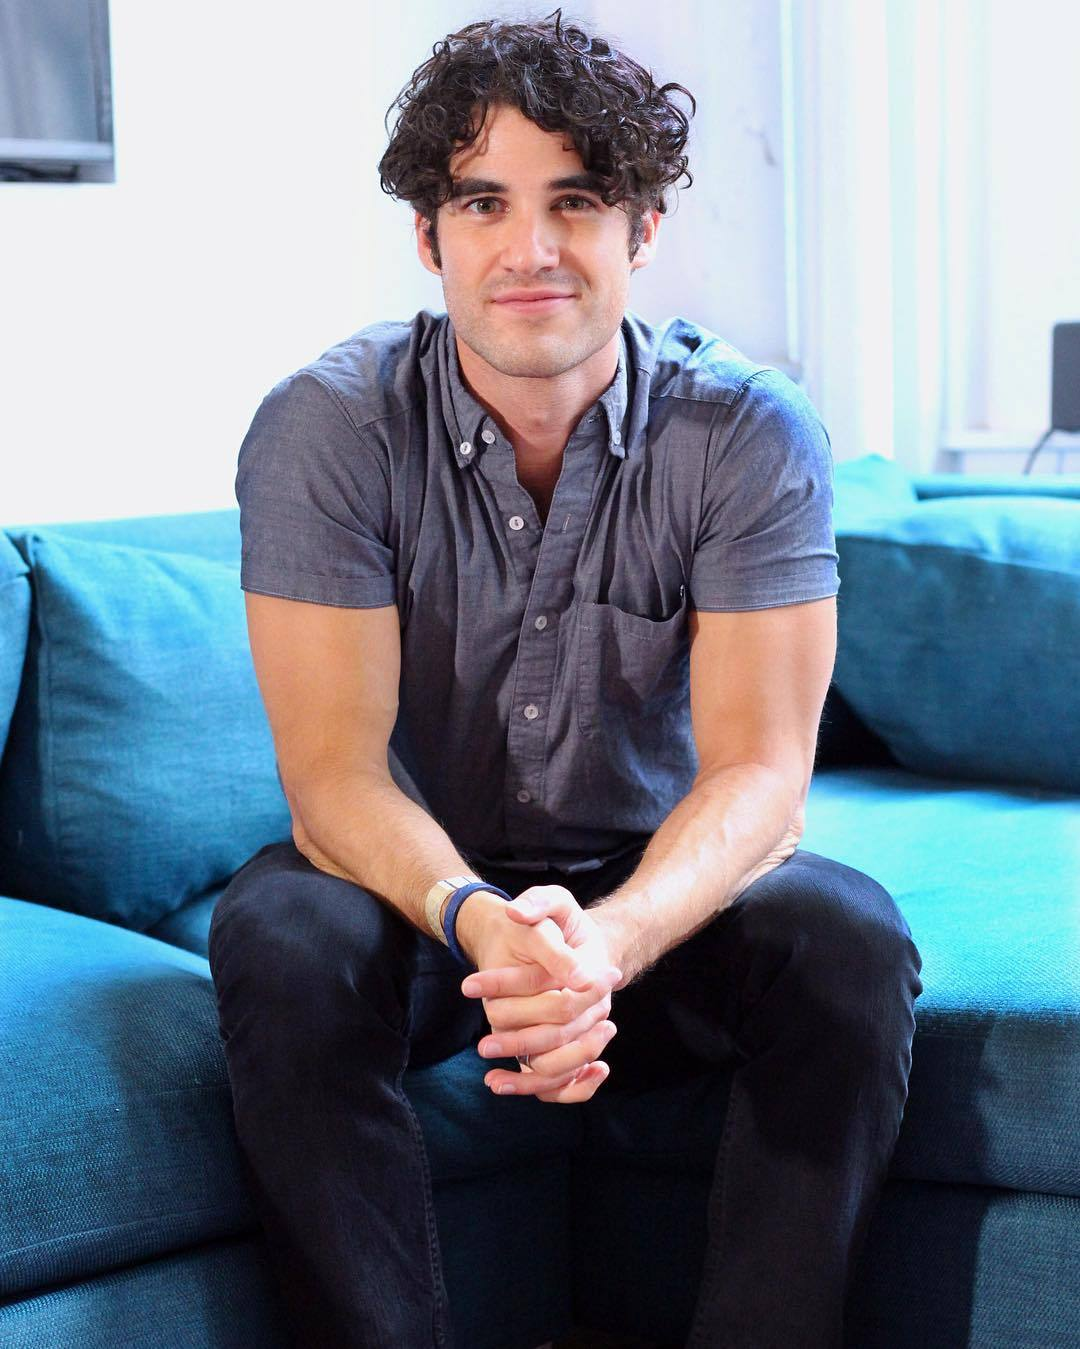 Brooklyn -  Darren Appreciation Thread: General News about Darren for 2016  - Page 11 Tumblr_oeaezbfdia1uetdyxo1_1280